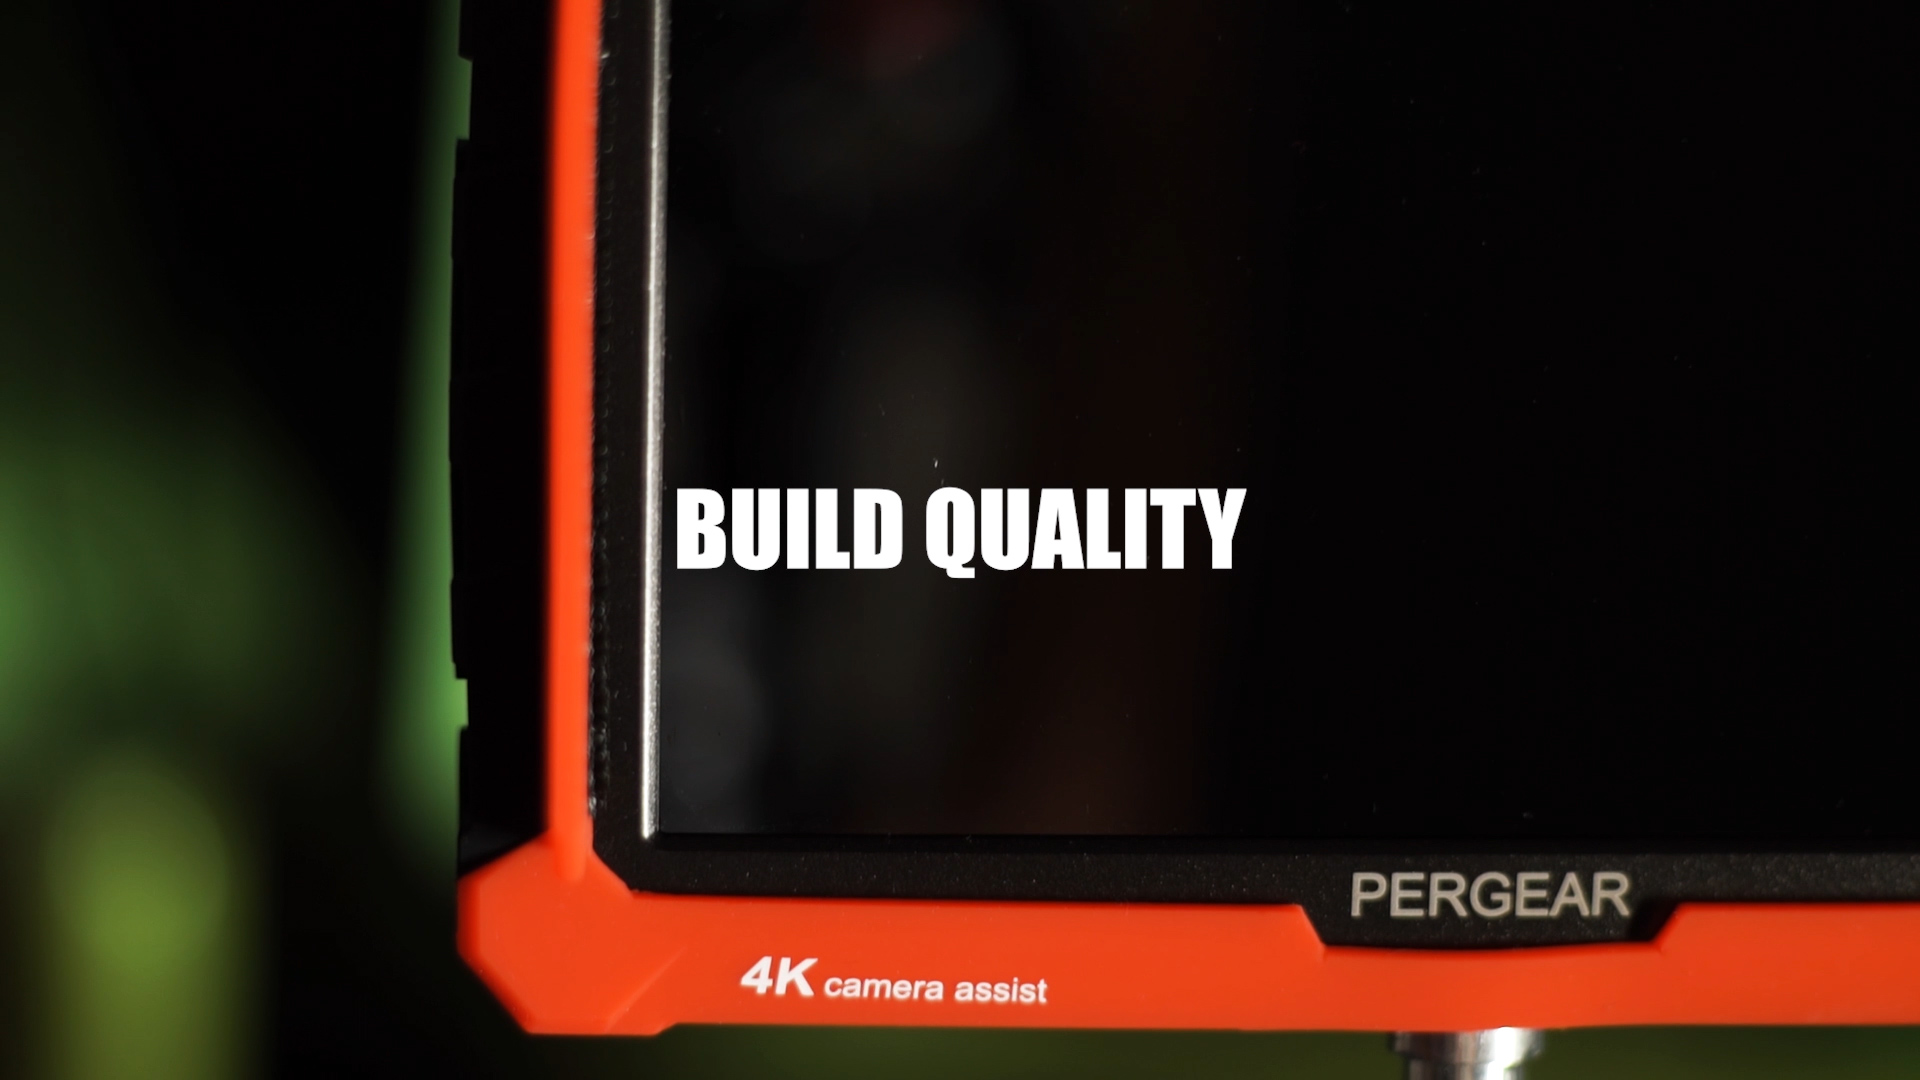 Per Gear - Build Quality.jpg